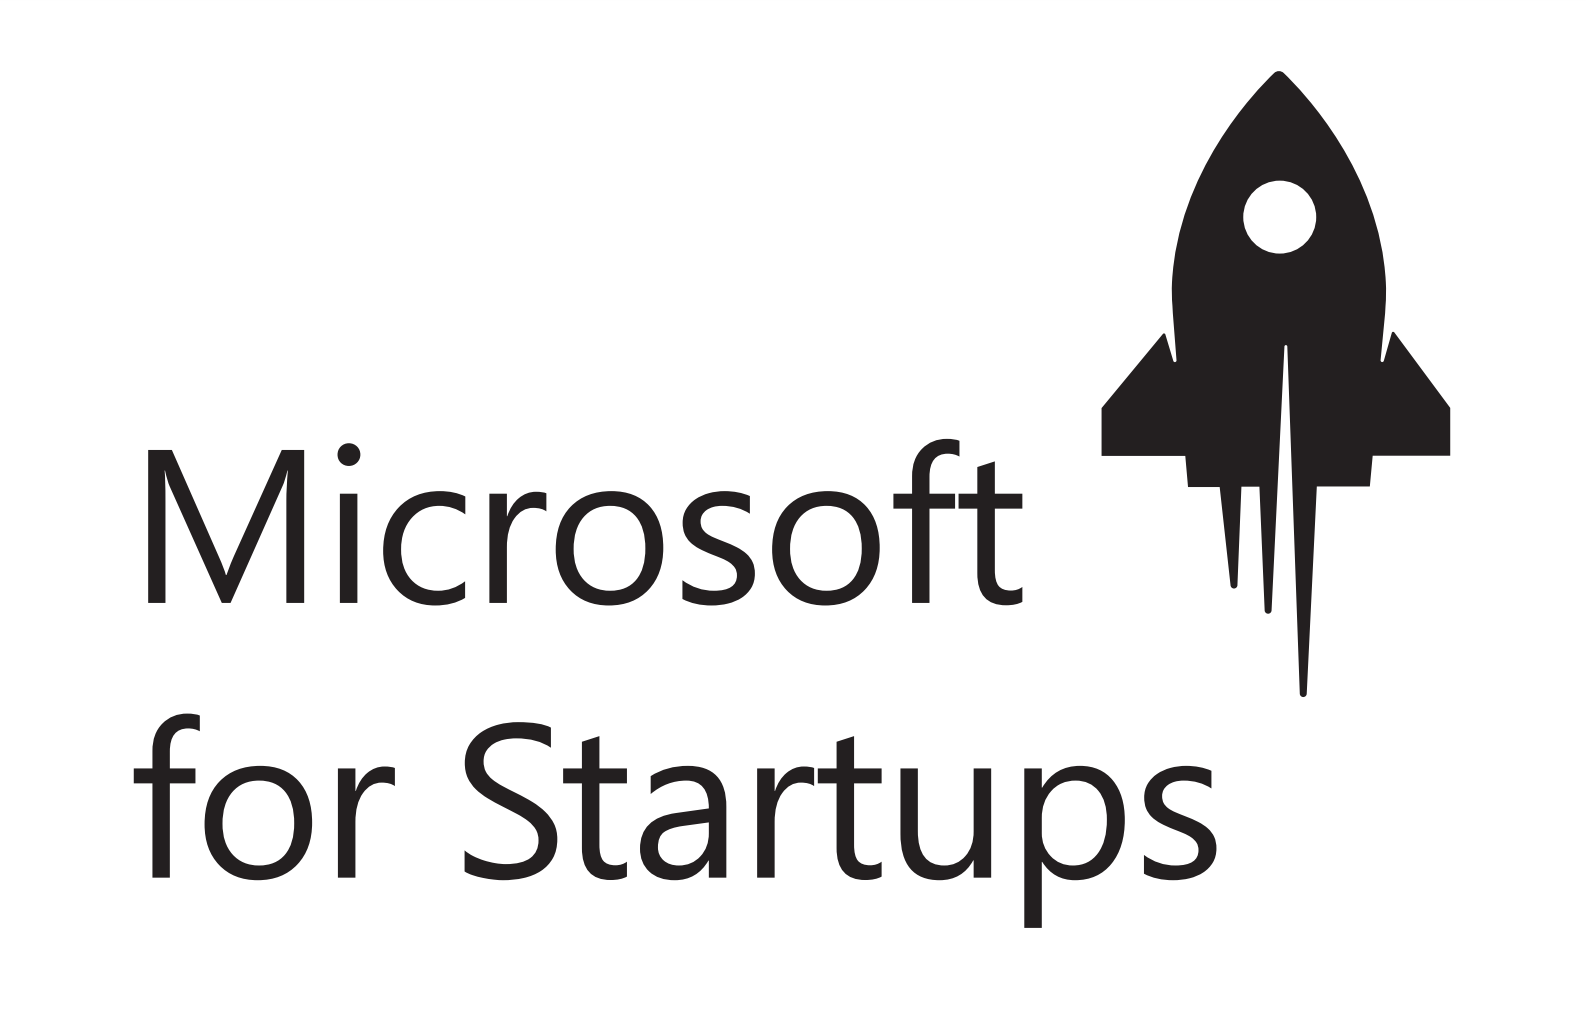 Microsoft for Startups